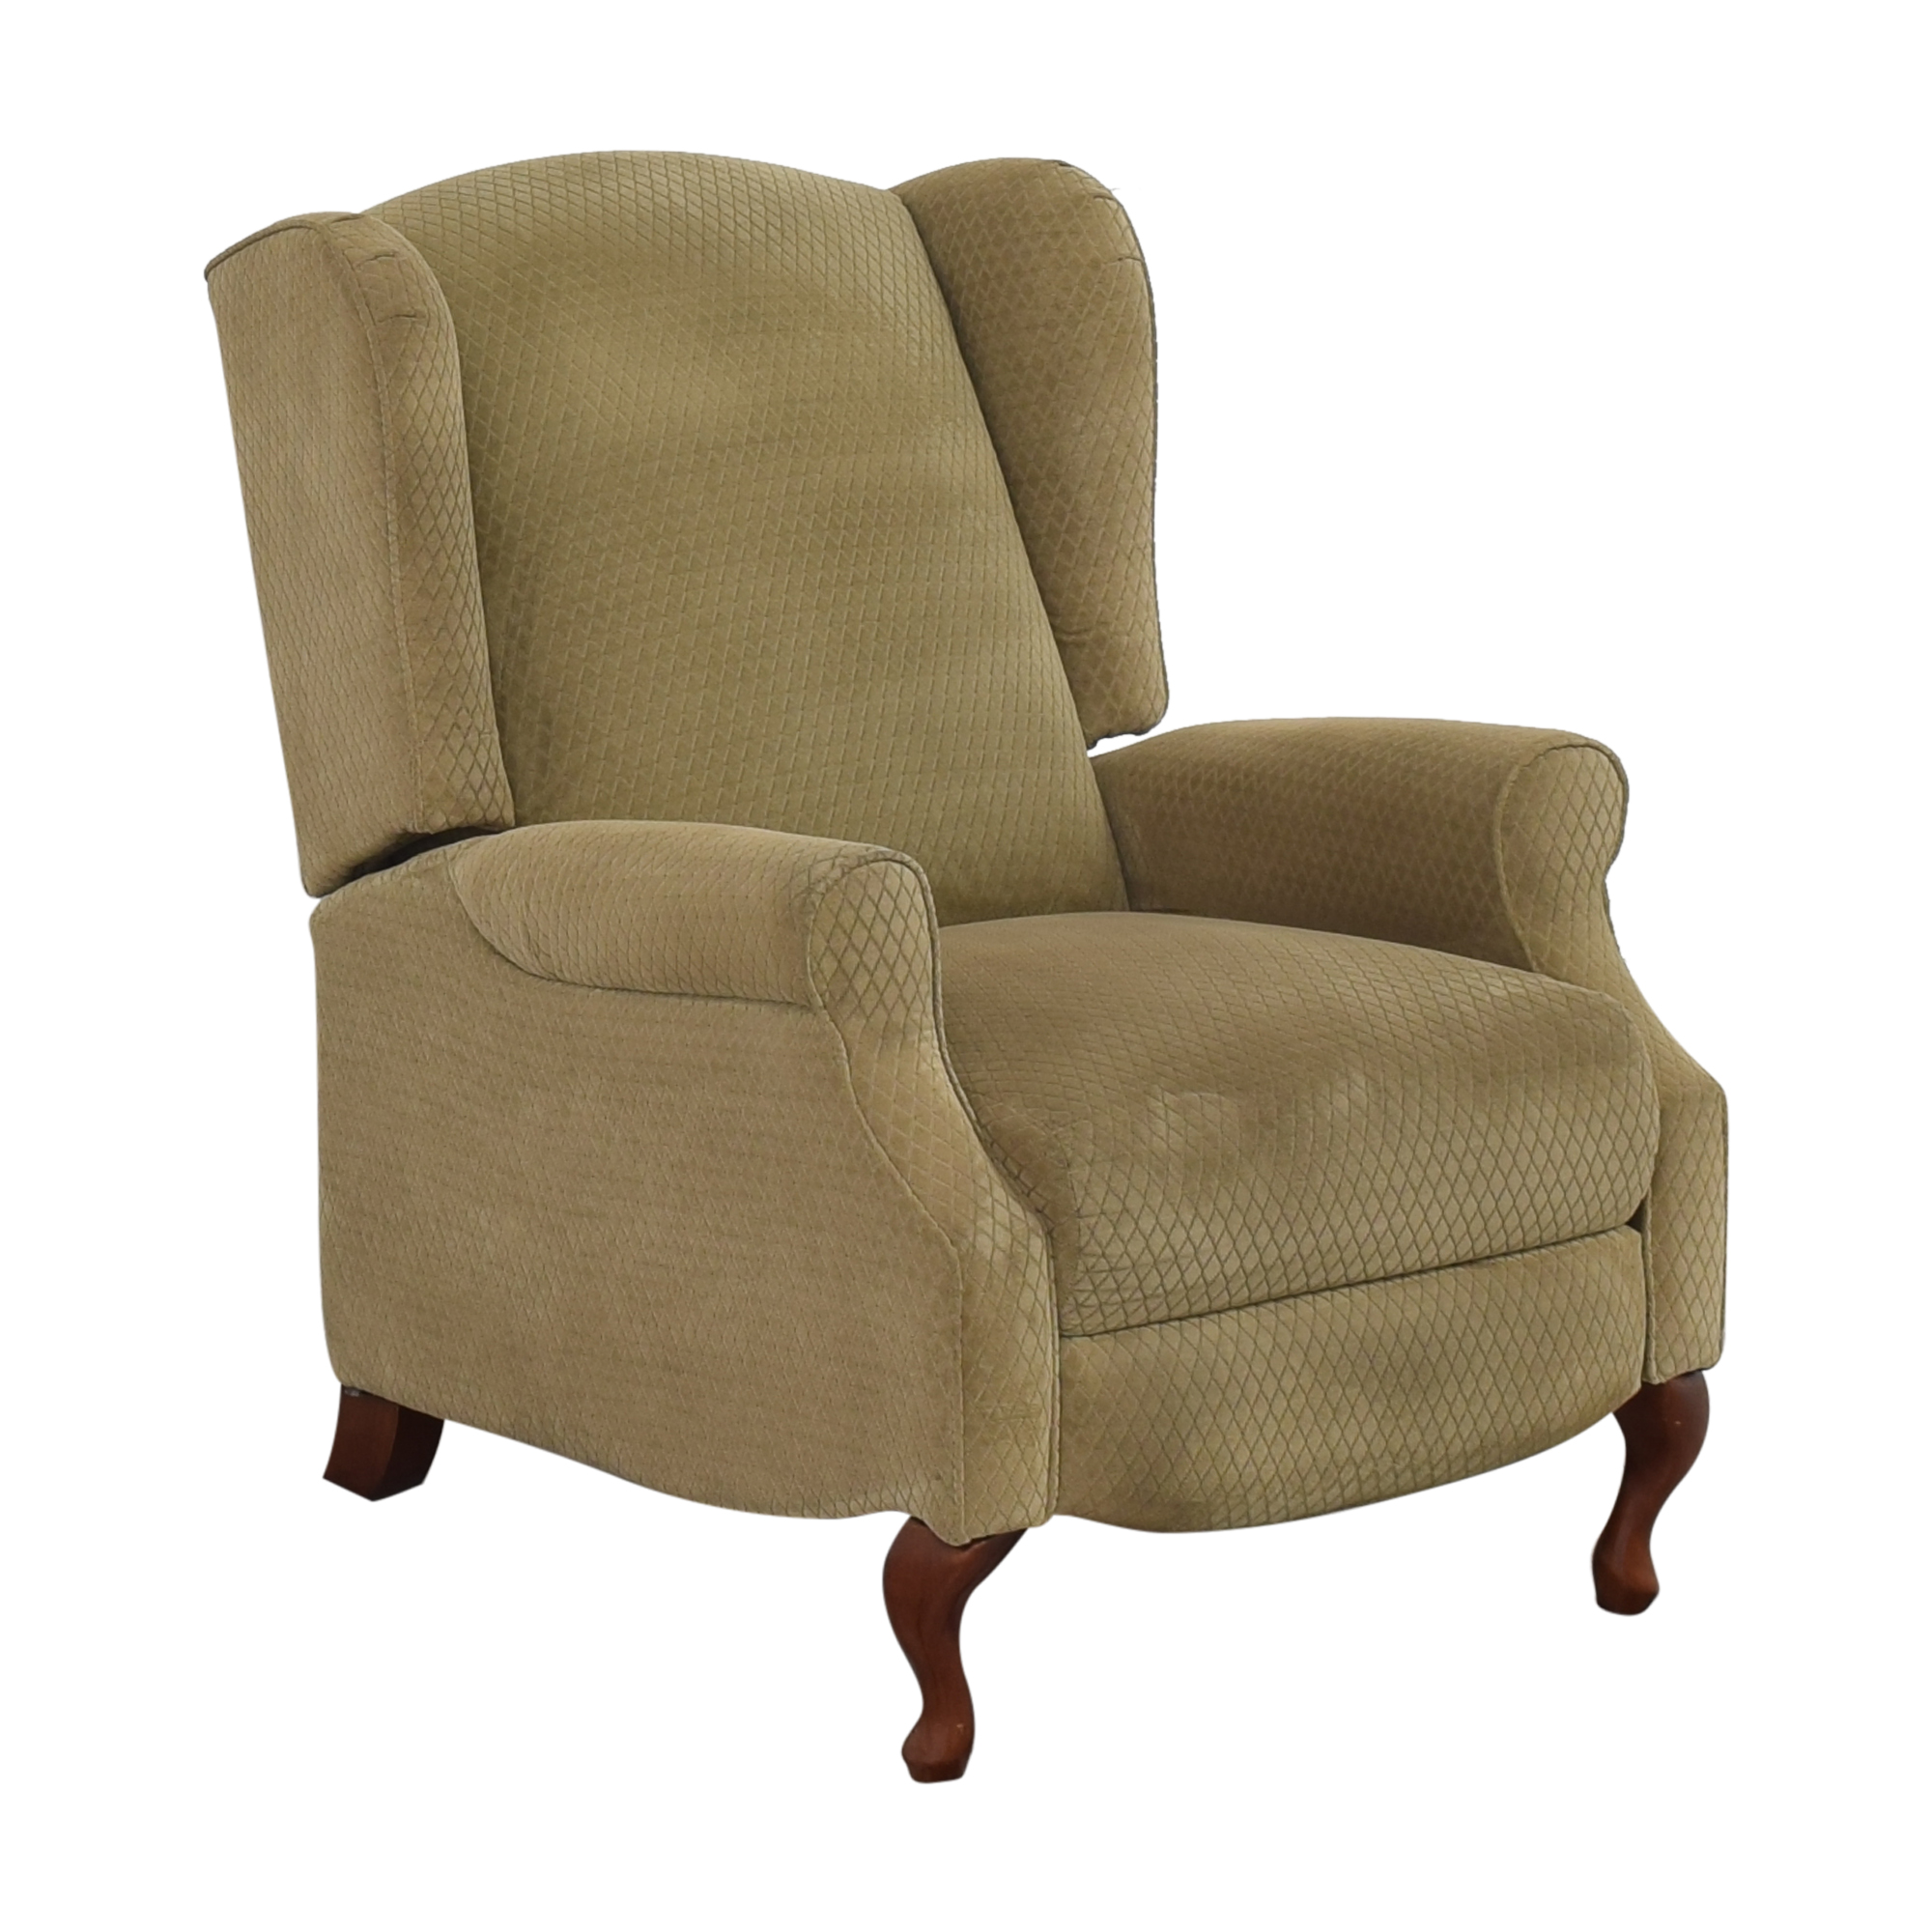 Macy's Edie Pushback Recliner / Chairs